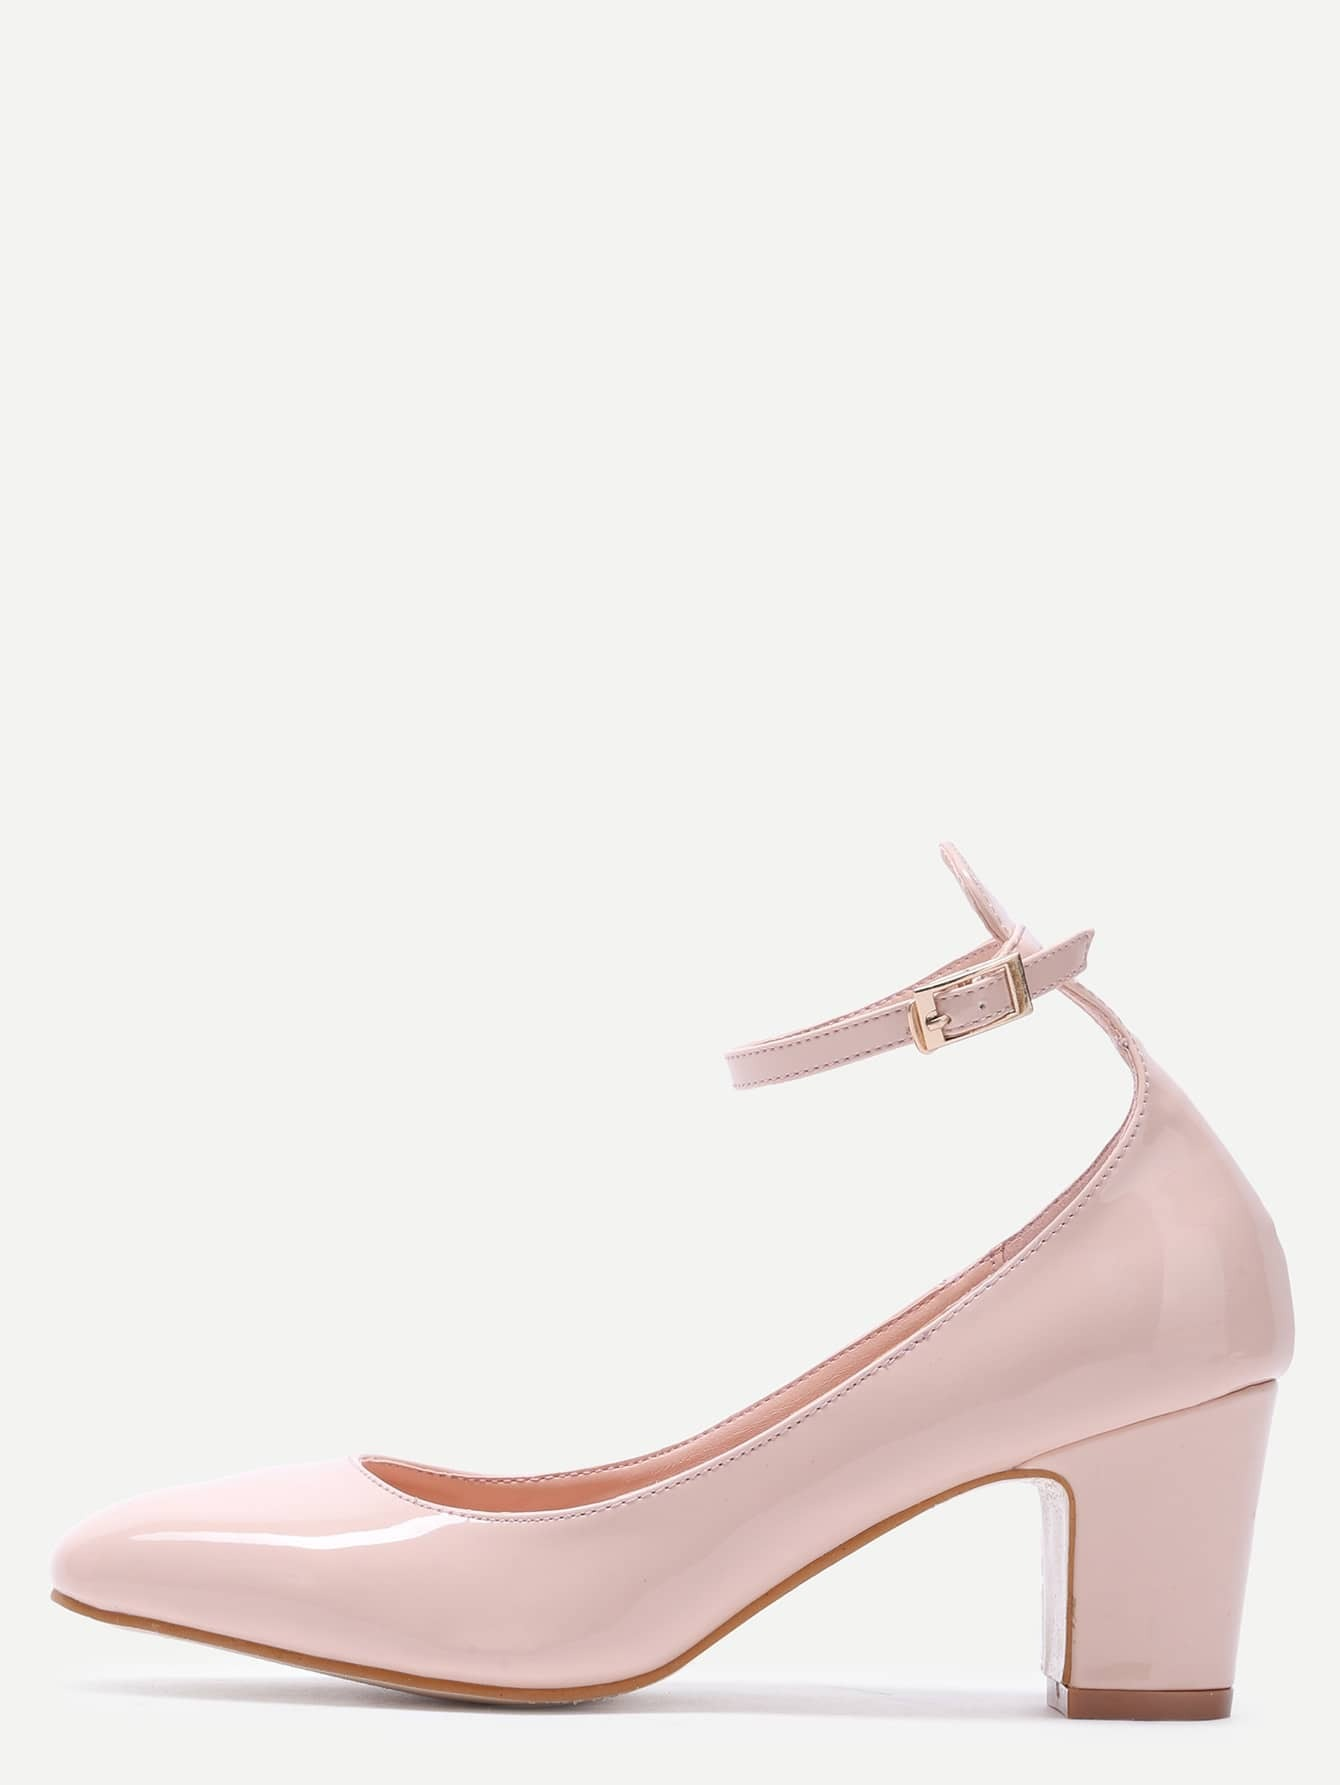 Nude Patent Leather Ankle Strap Chunky Heels shoes161116806